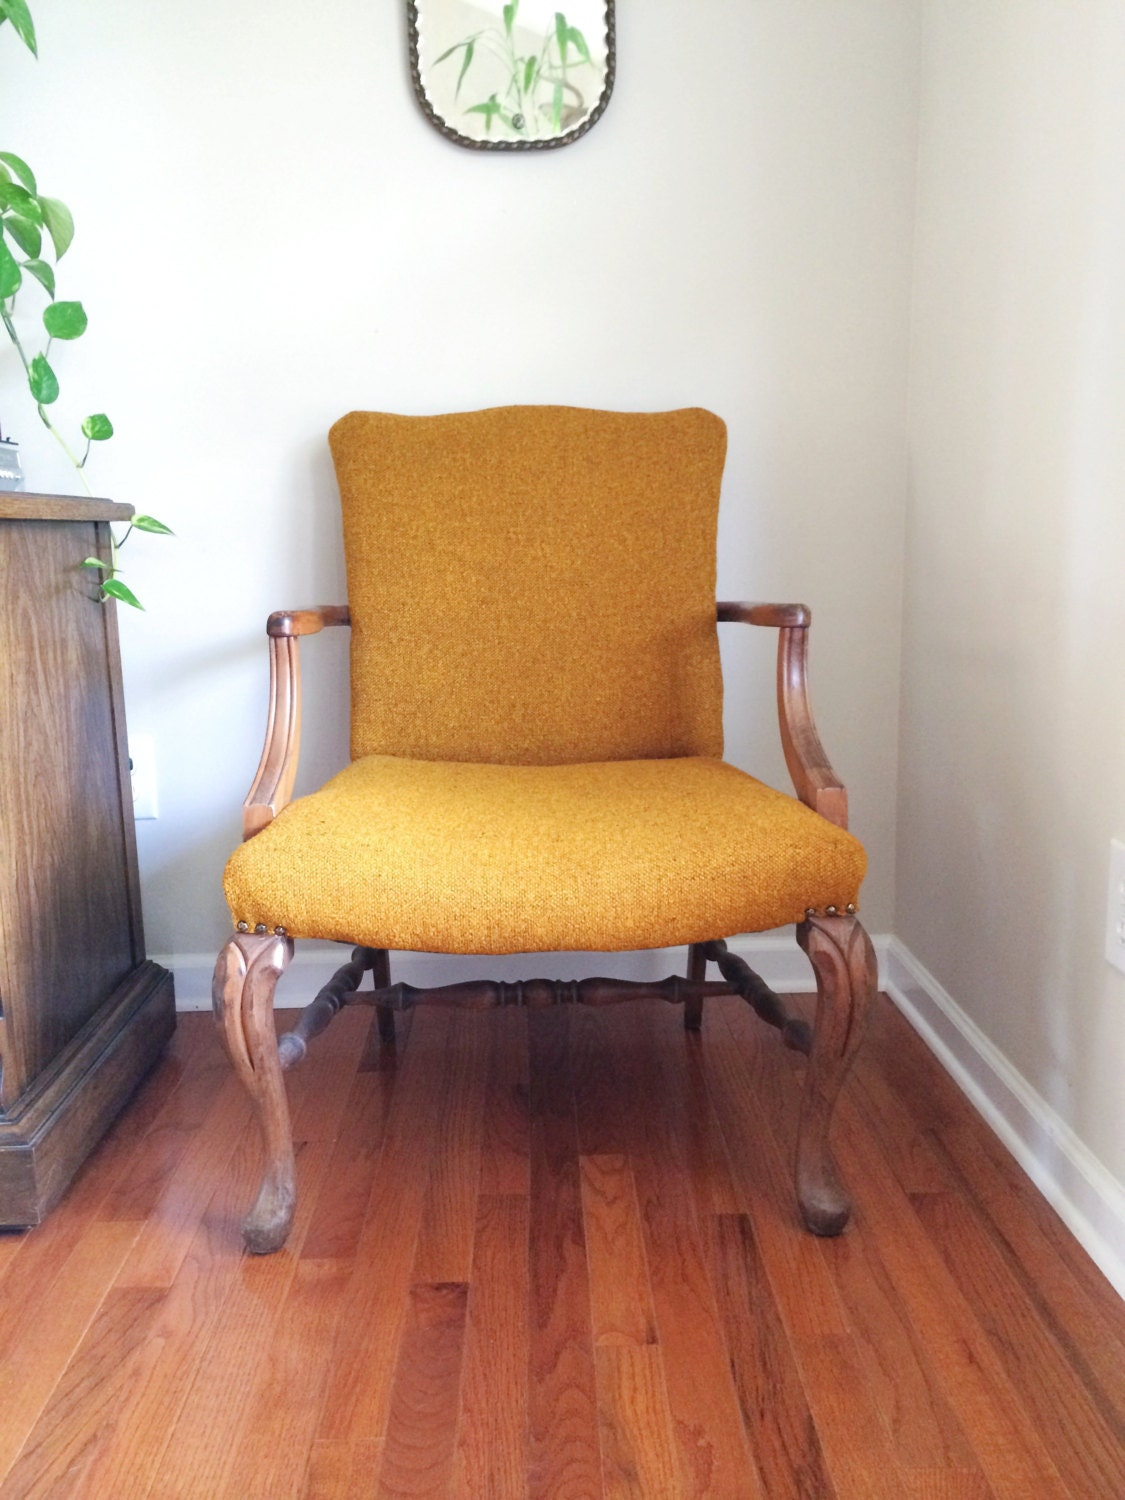 Amazing photo of Vintage Carved Wood Detail Queen Anne Tweed Arm Chair – Haute Juice with #B47C17 color and 1125x1500 pixels